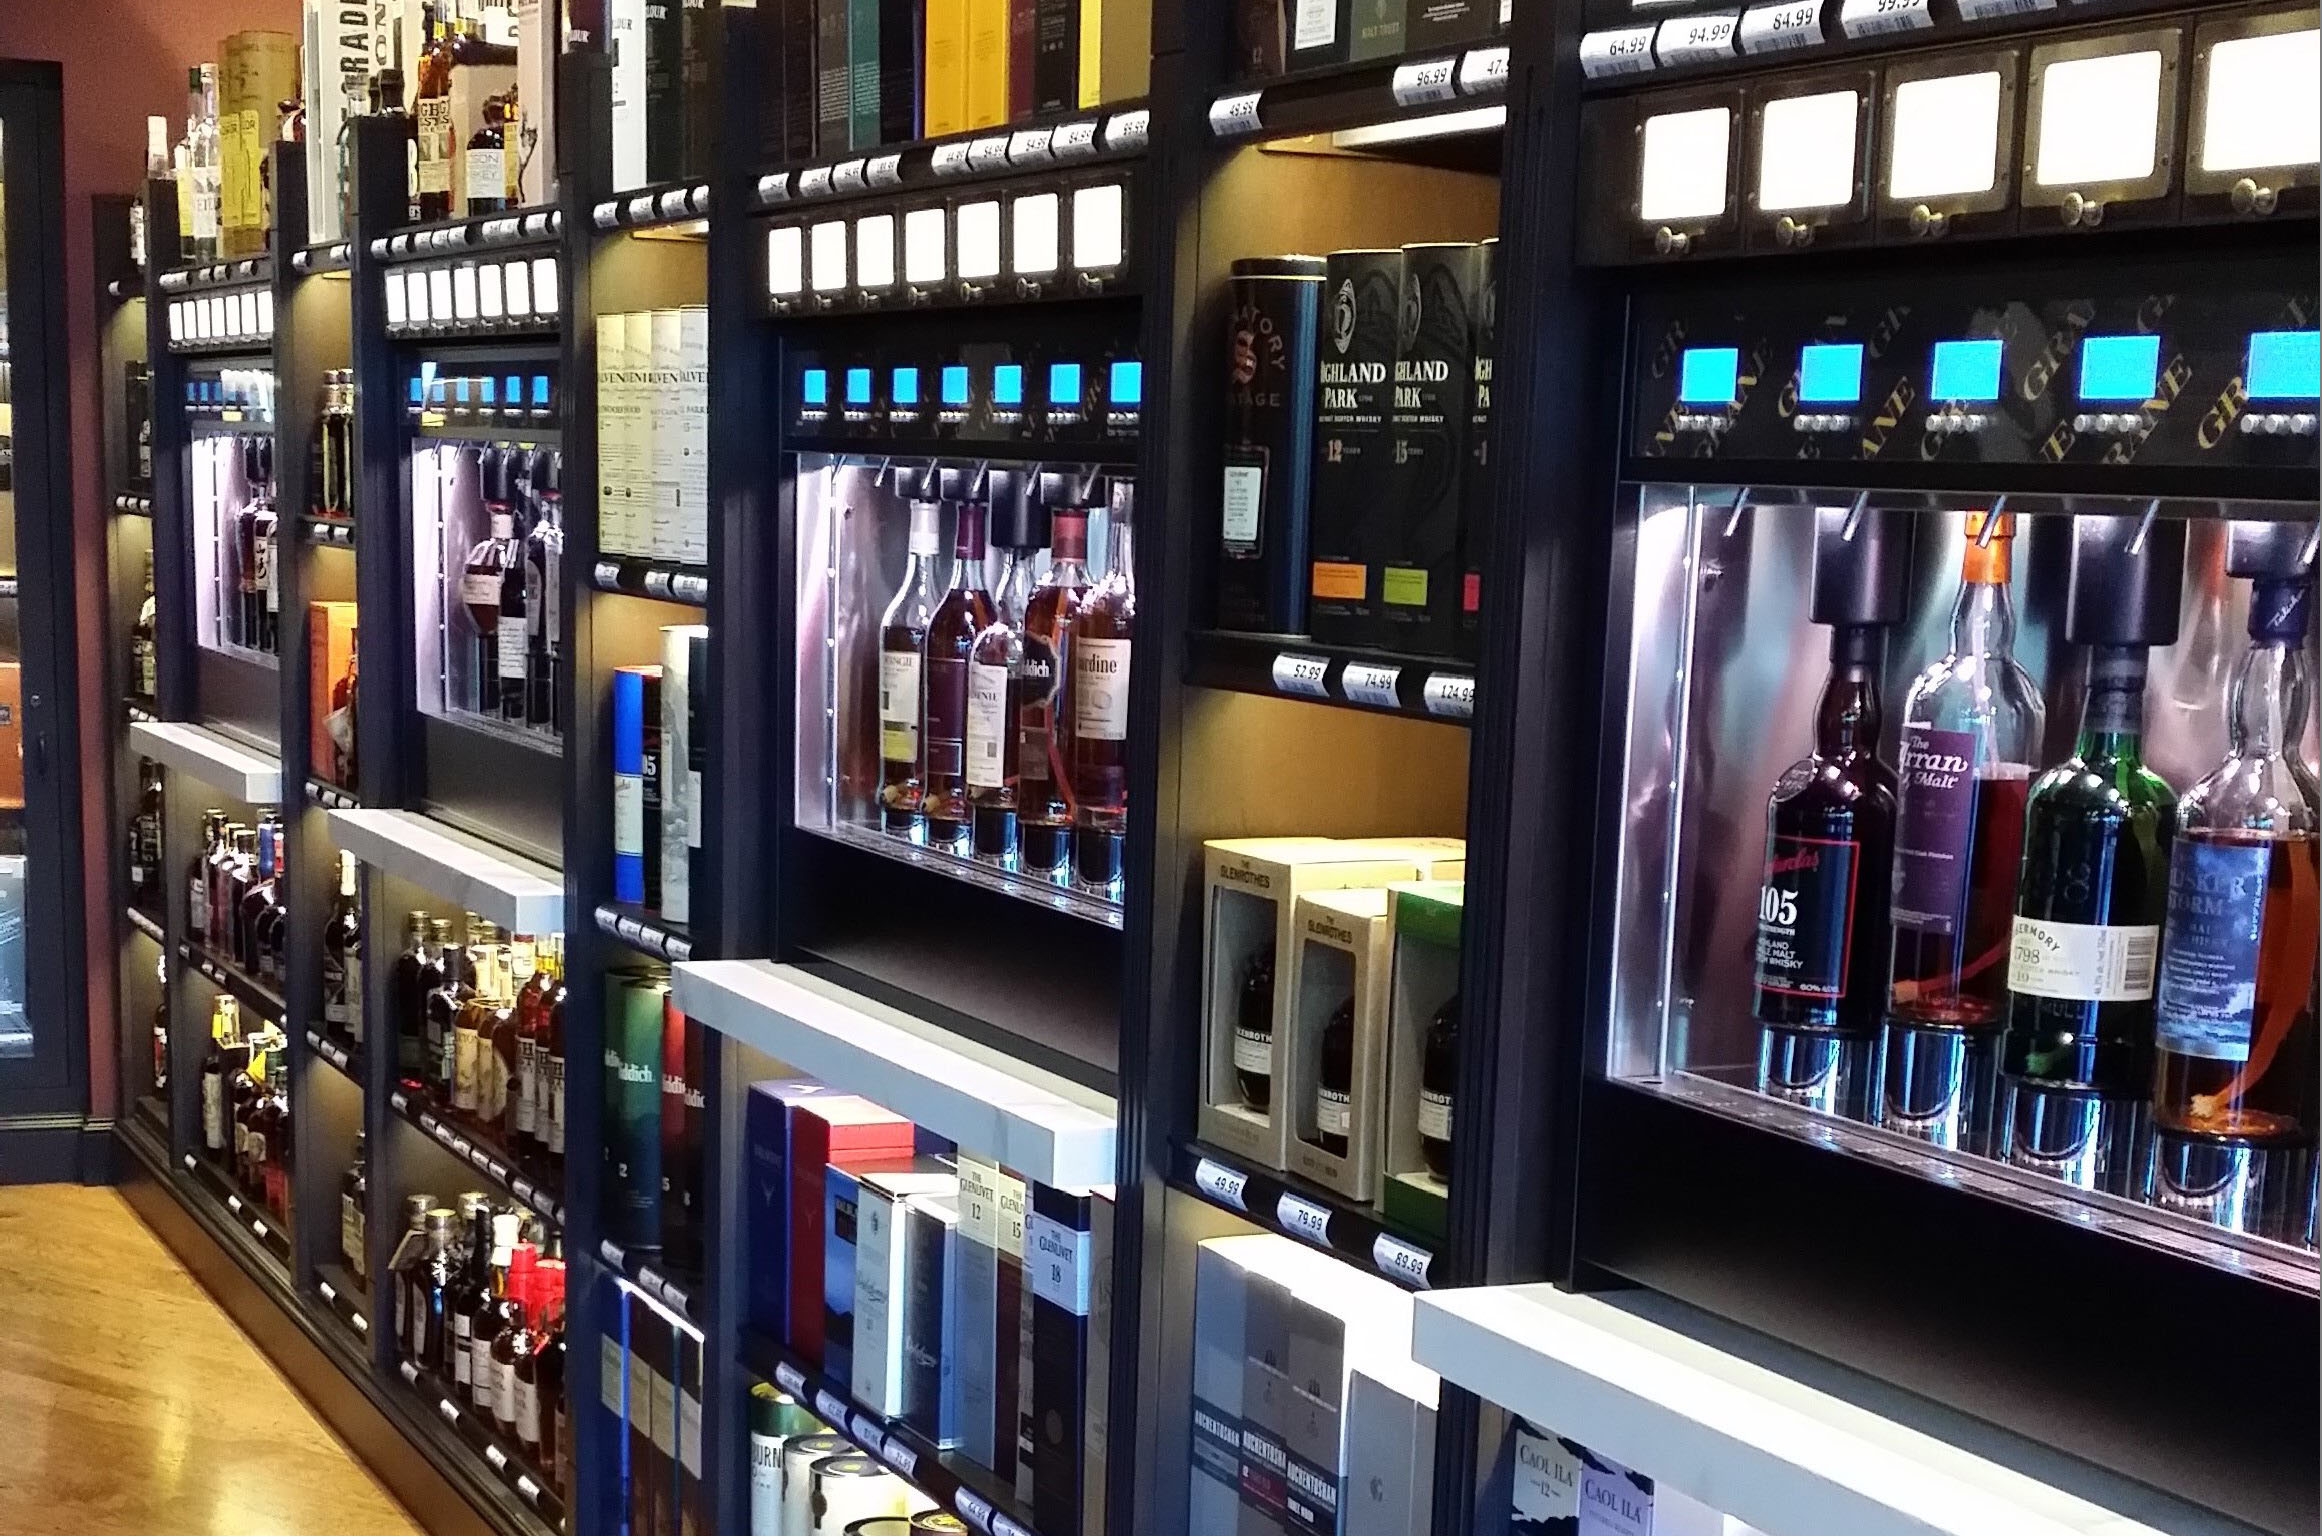 Grane-the-first-Whiskies-automated-bar-in-US-.jpg